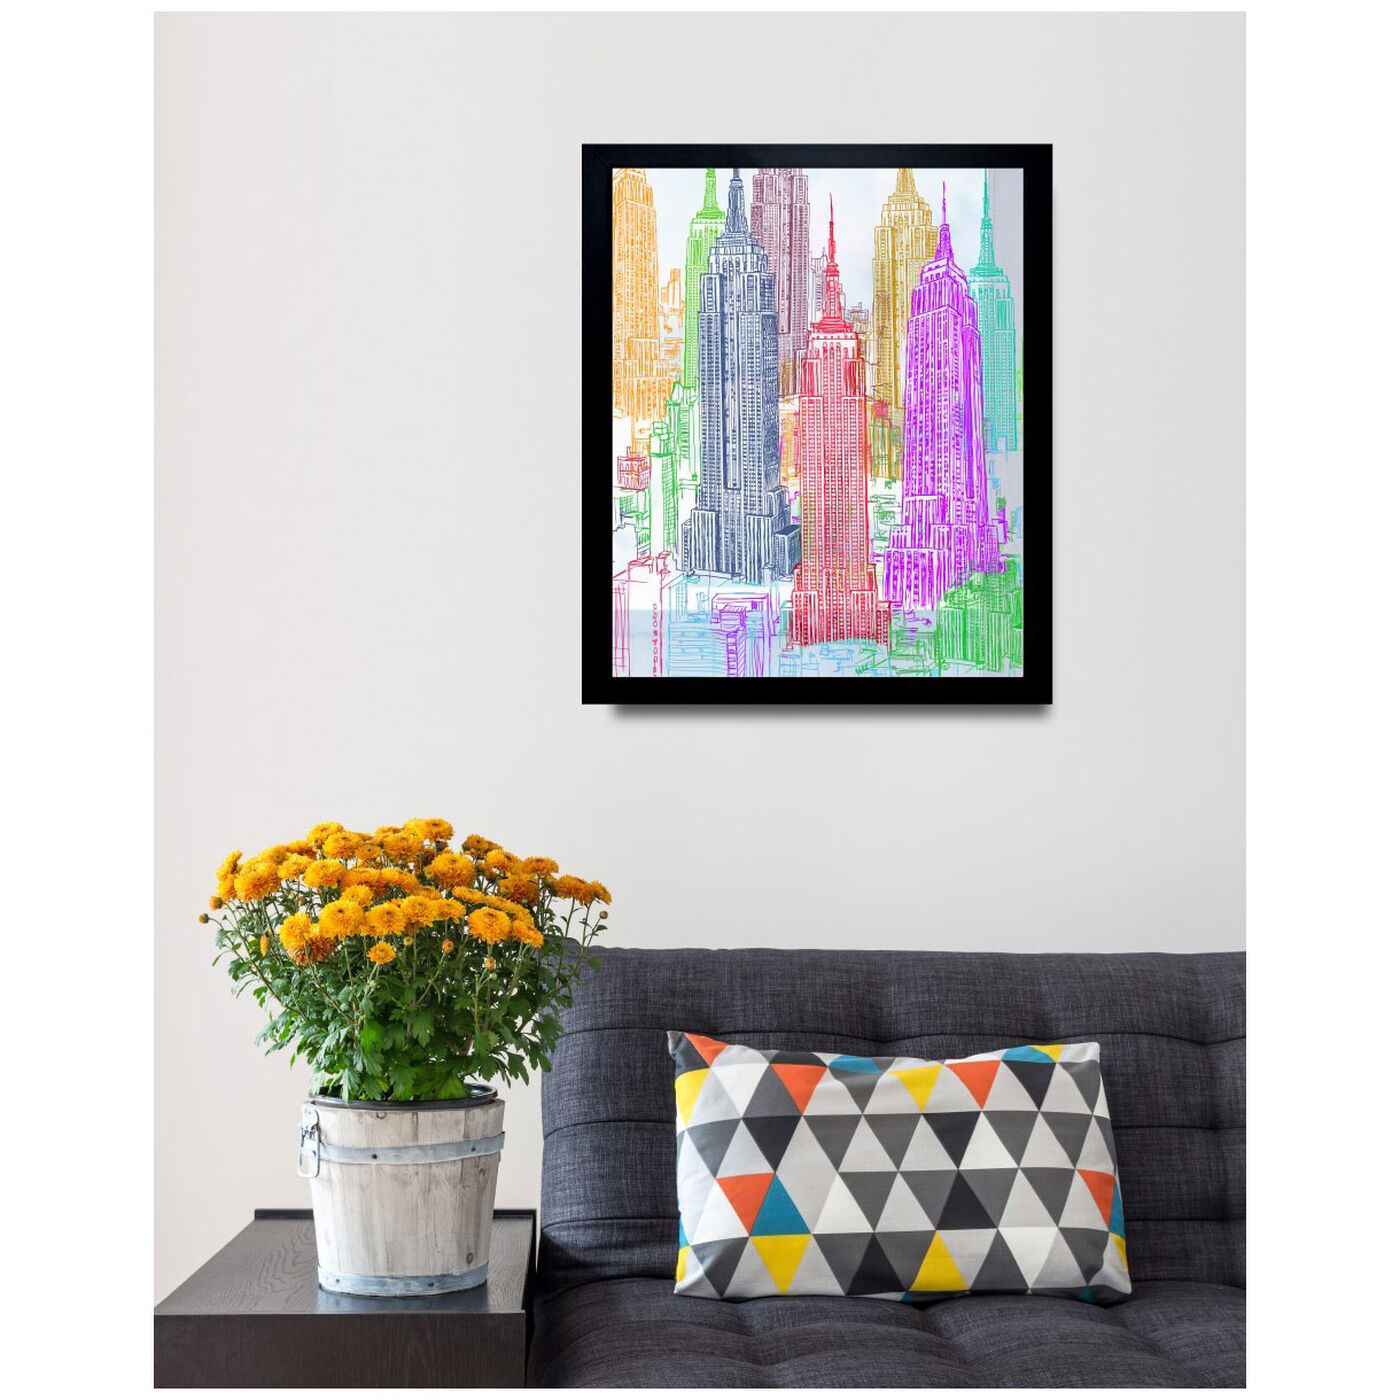 Hanging view of Construct featuring architecture and buildings and united states buildings art.